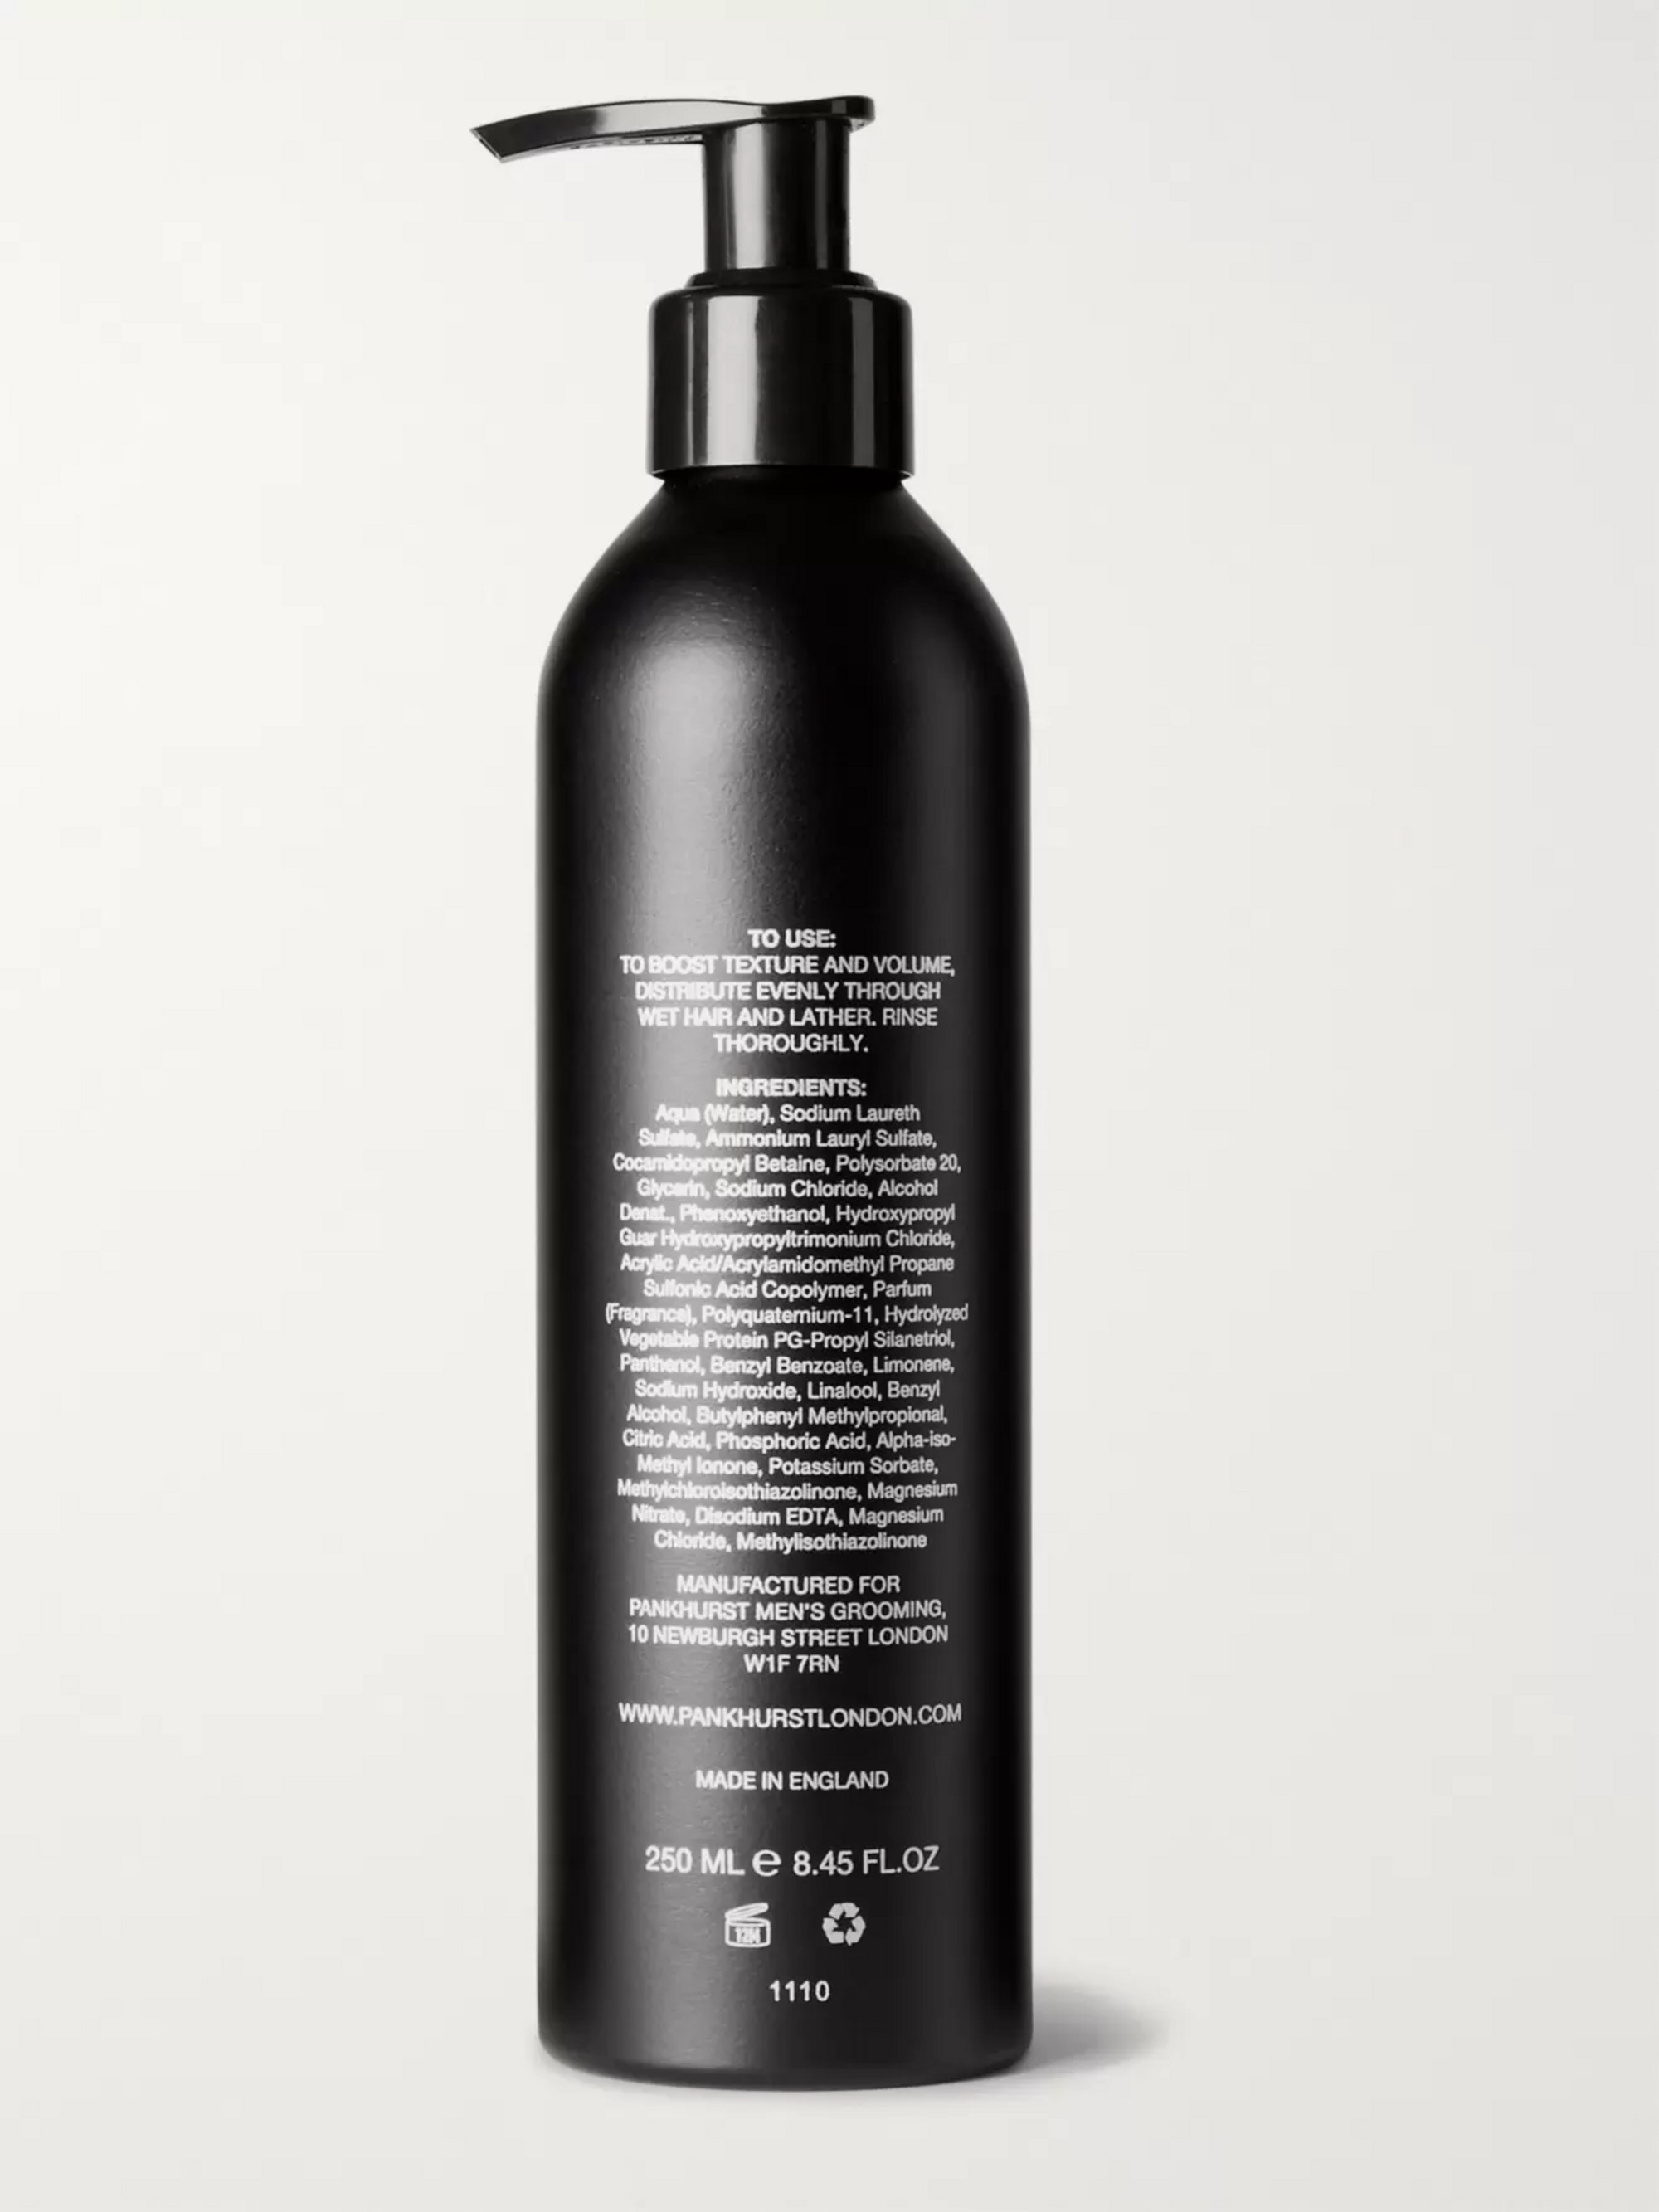 Pankhurst London Thickening Shampoo, 250ml